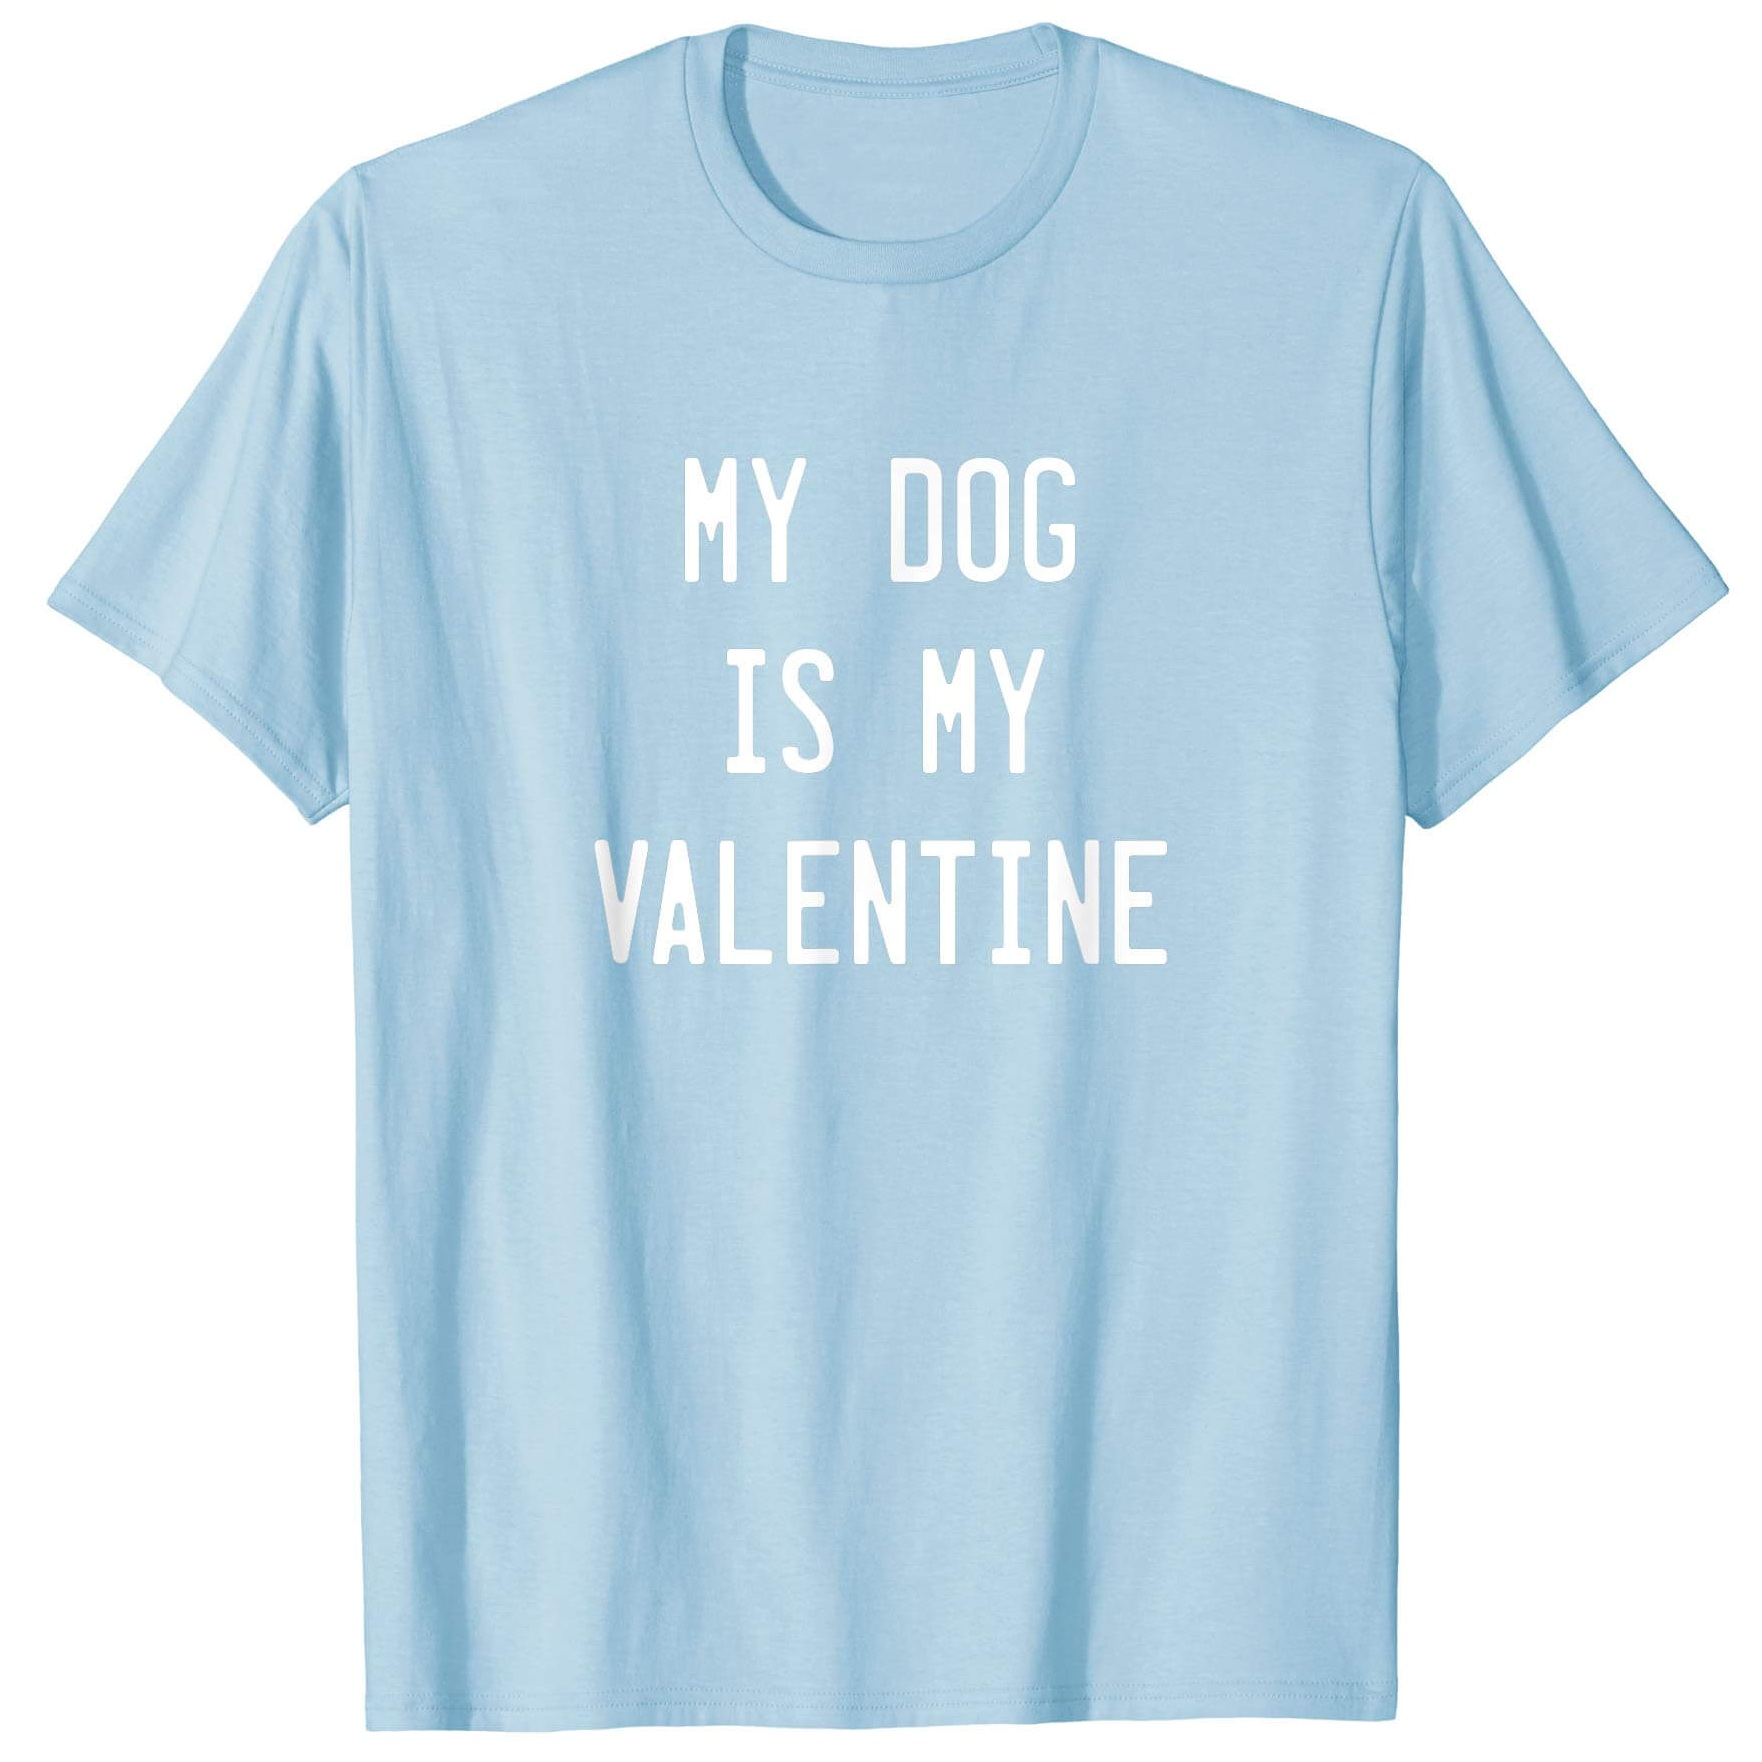 My Dog Is My Valentine Cotton T-Shirt